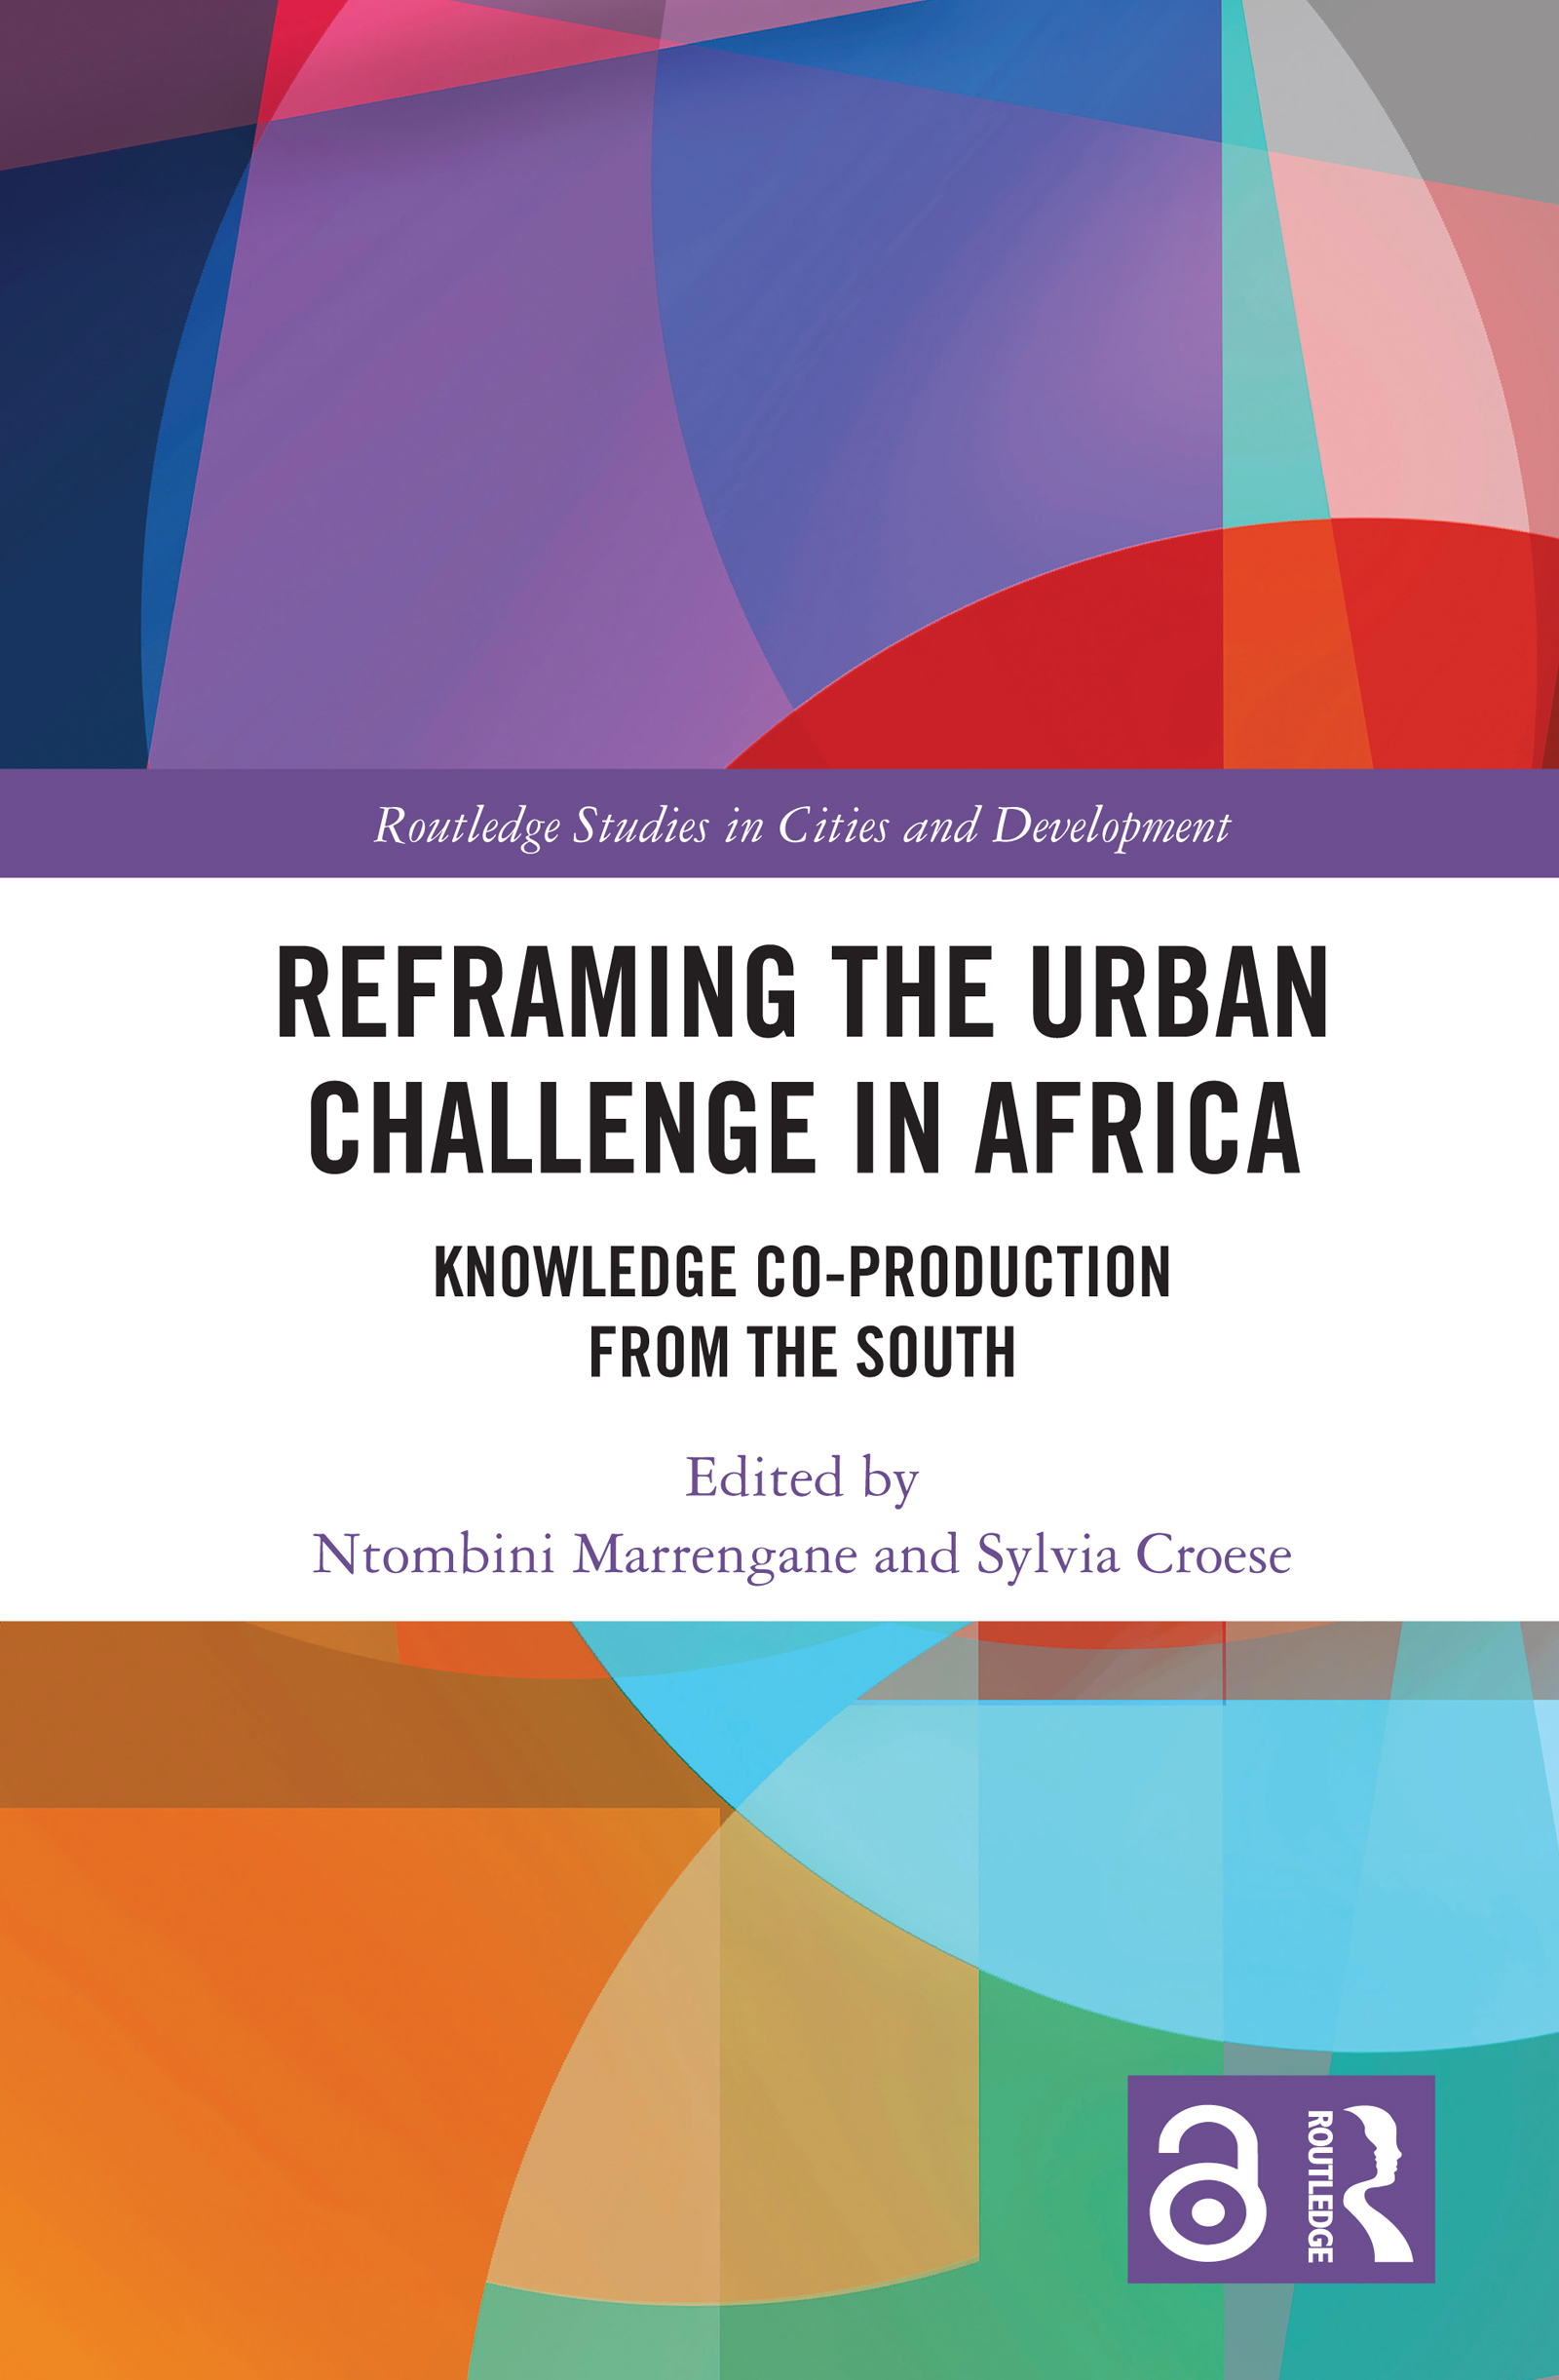 Reframing the Urban Challenge in Africa